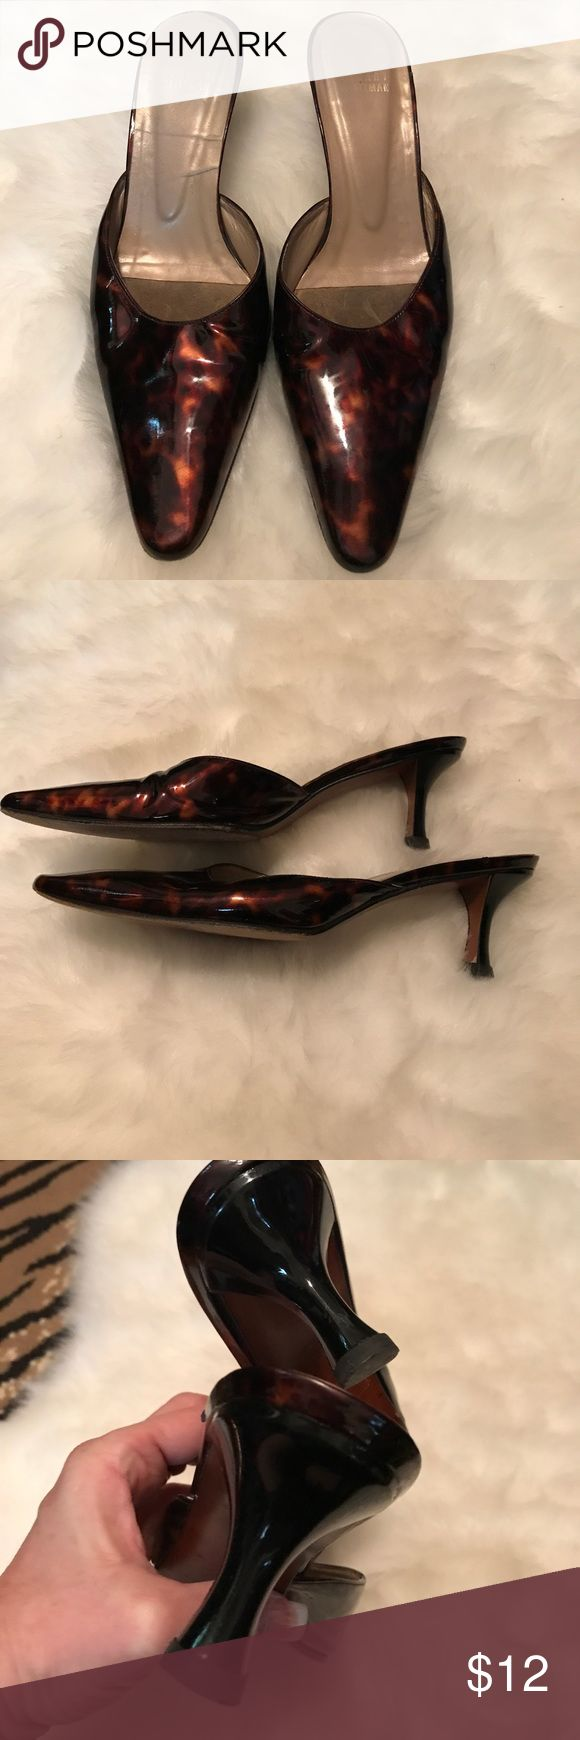 Stuart Wiseman shoes Gorgeous slip on kitten heel. Top rated quality and comfort classy shoes. Shoes